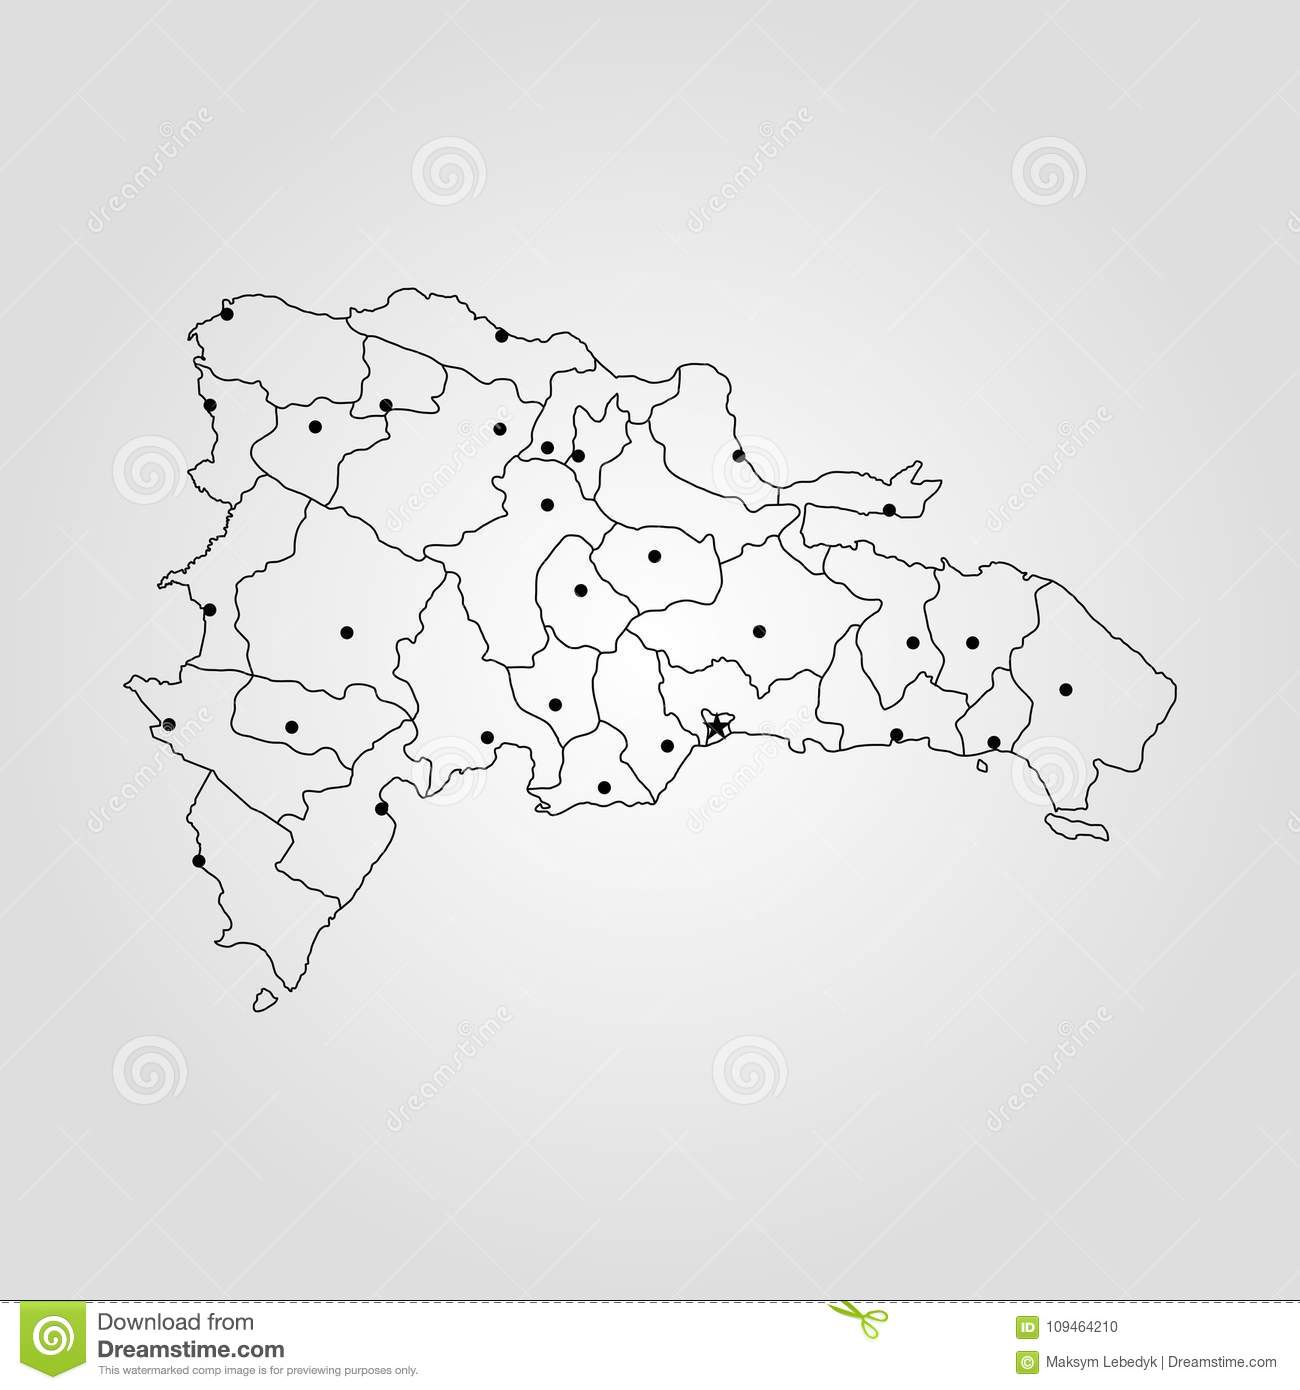 Map of dominican republic stock illustration illustration of map of dominican republic vector illustration world map publicscrutiny Choice Image